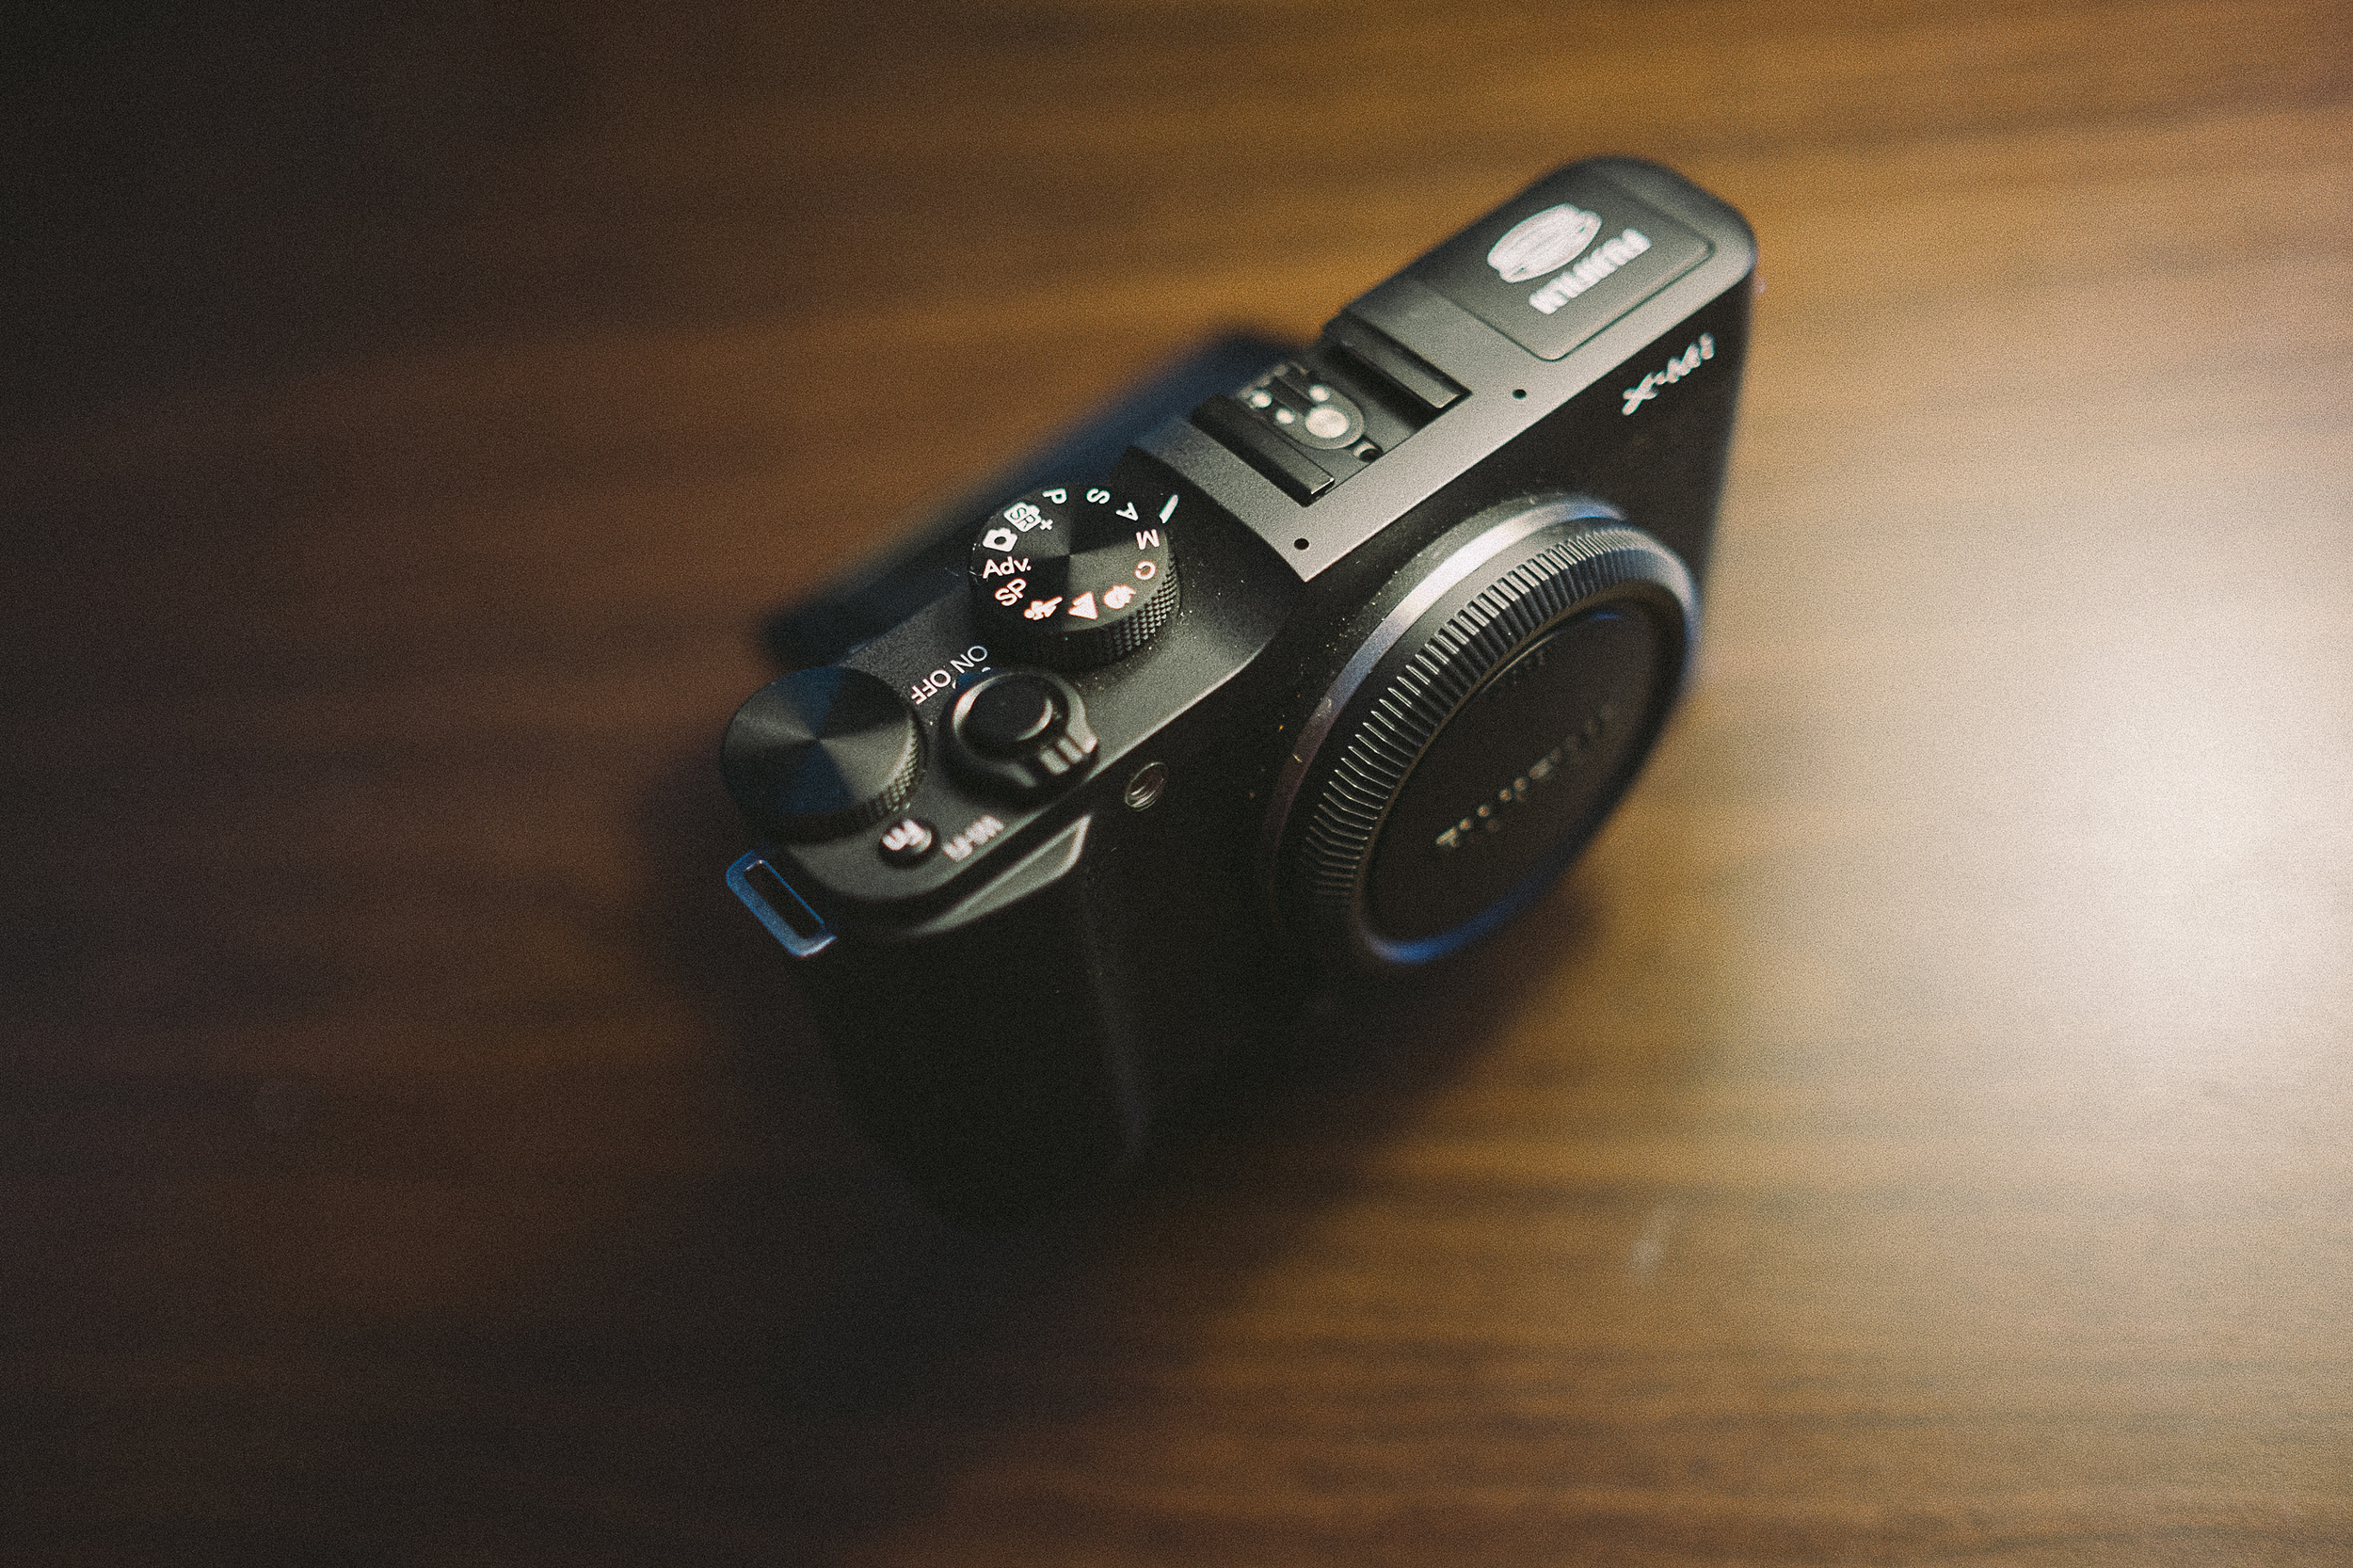 The Fuji X-M1 is rather old hat now, but it still offers that awesome Fuji quality at a very decent price.